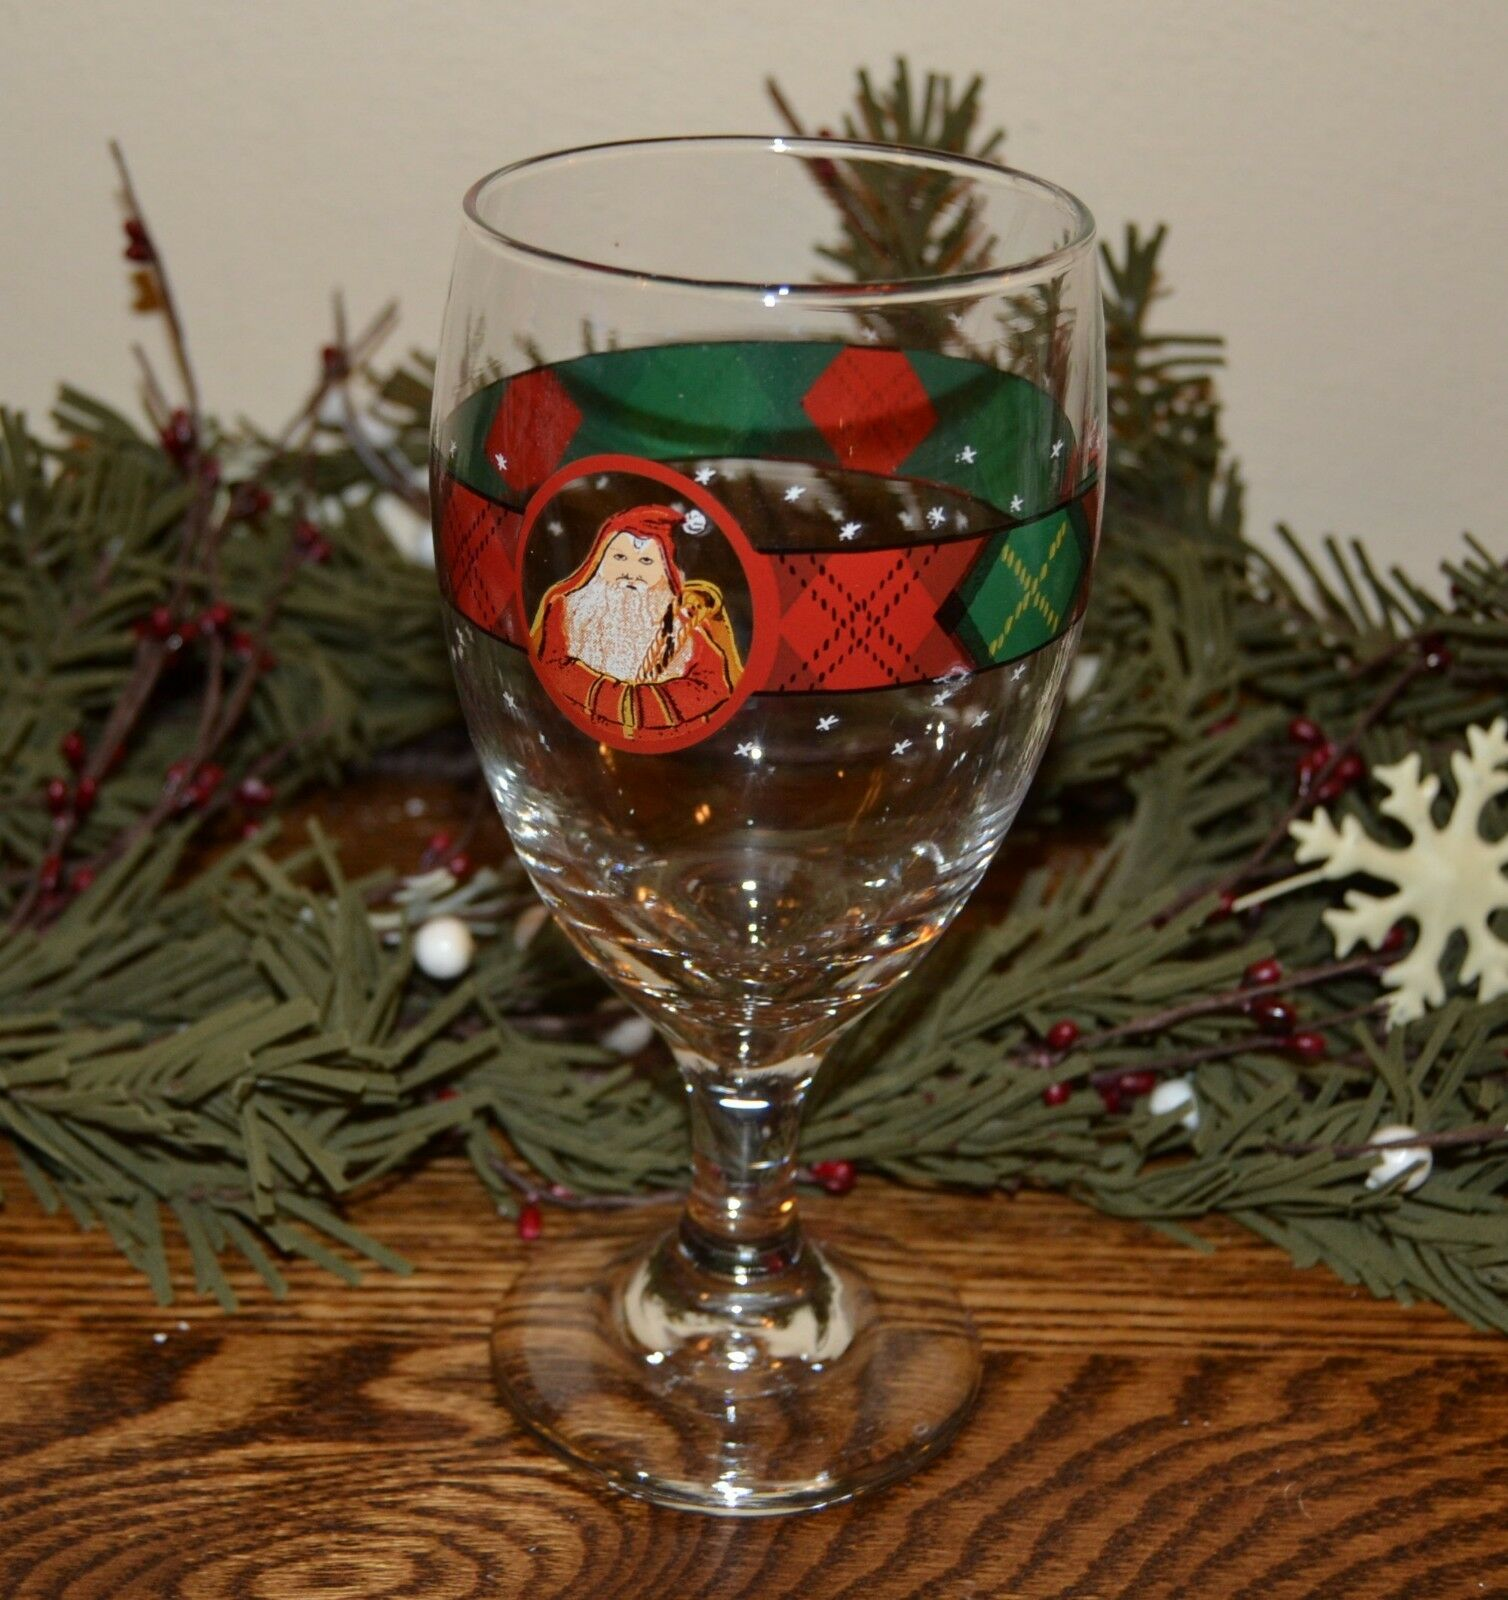 Block Father Christmas Santa Goblet Glass Glassware Plaid - $8.50